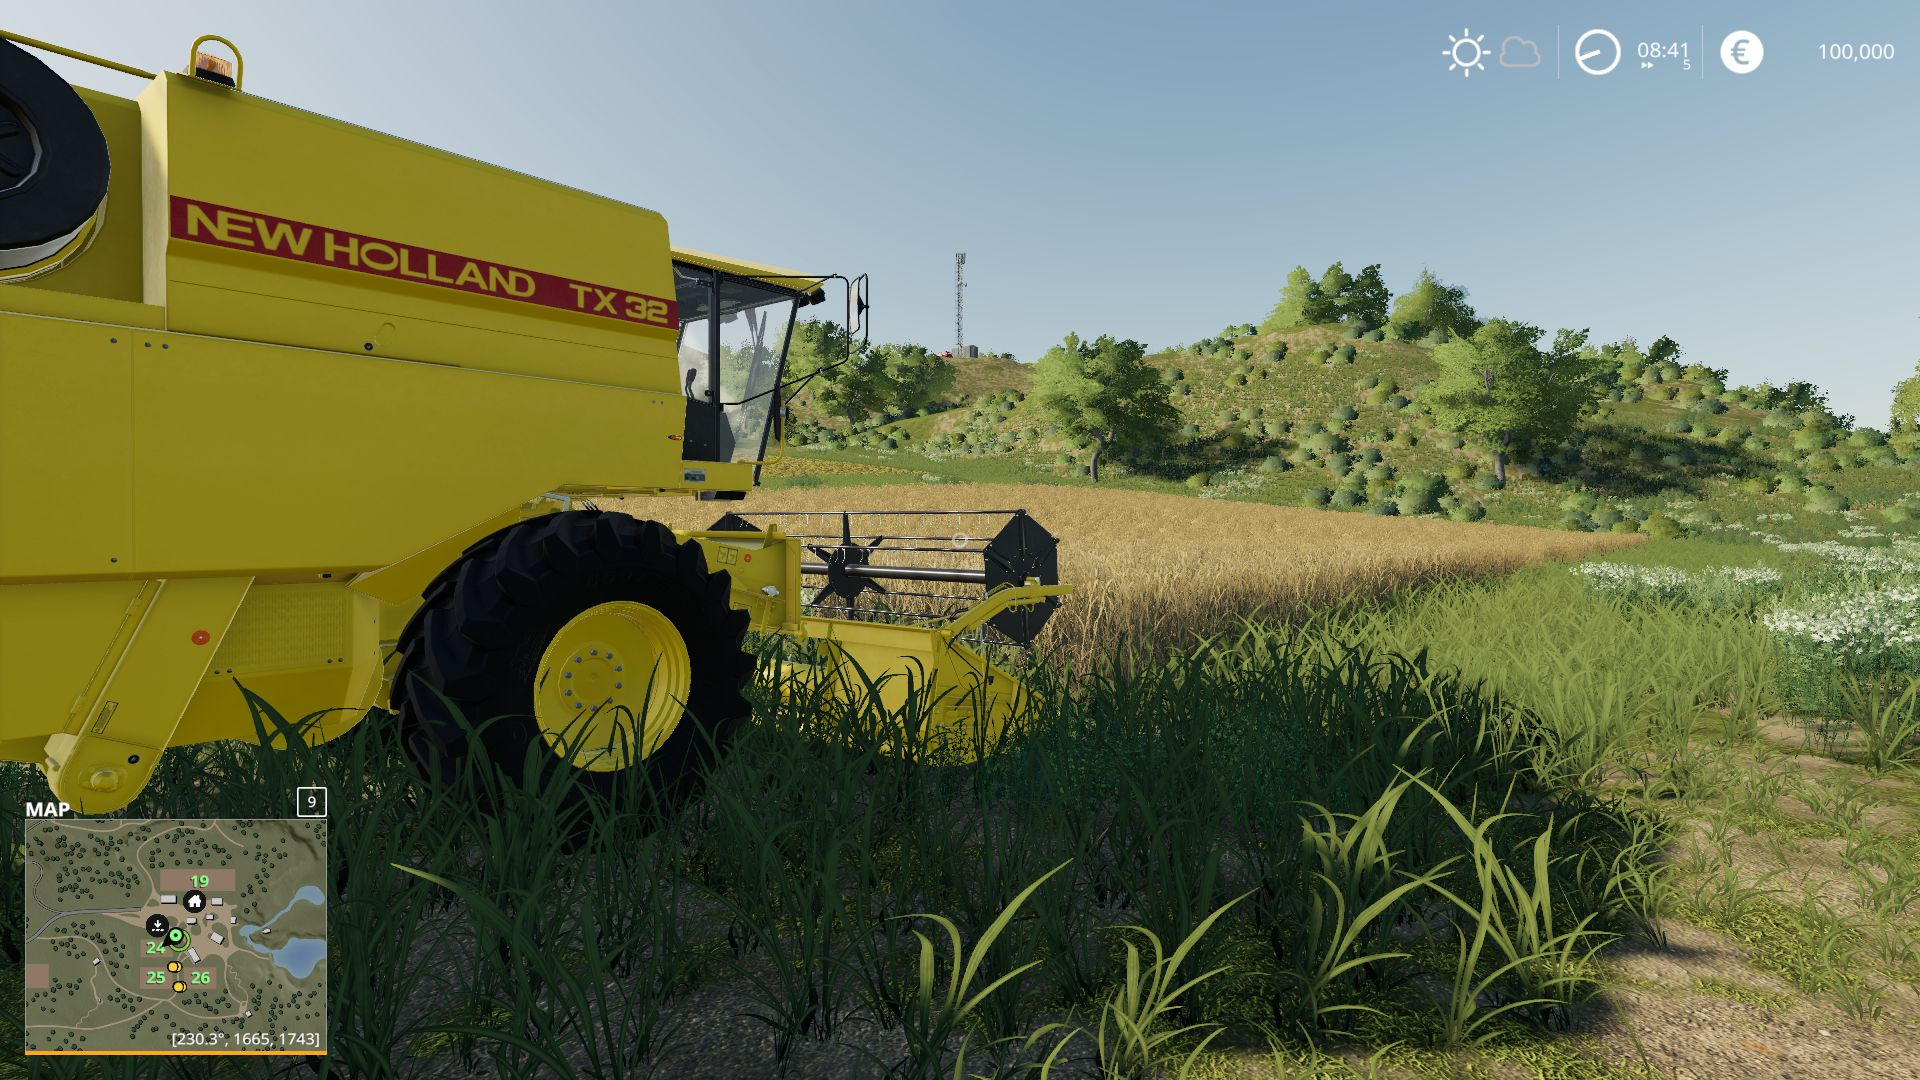 Farming Simulator 19 Laptop and Desktop Benchmarks - NotebookCheck